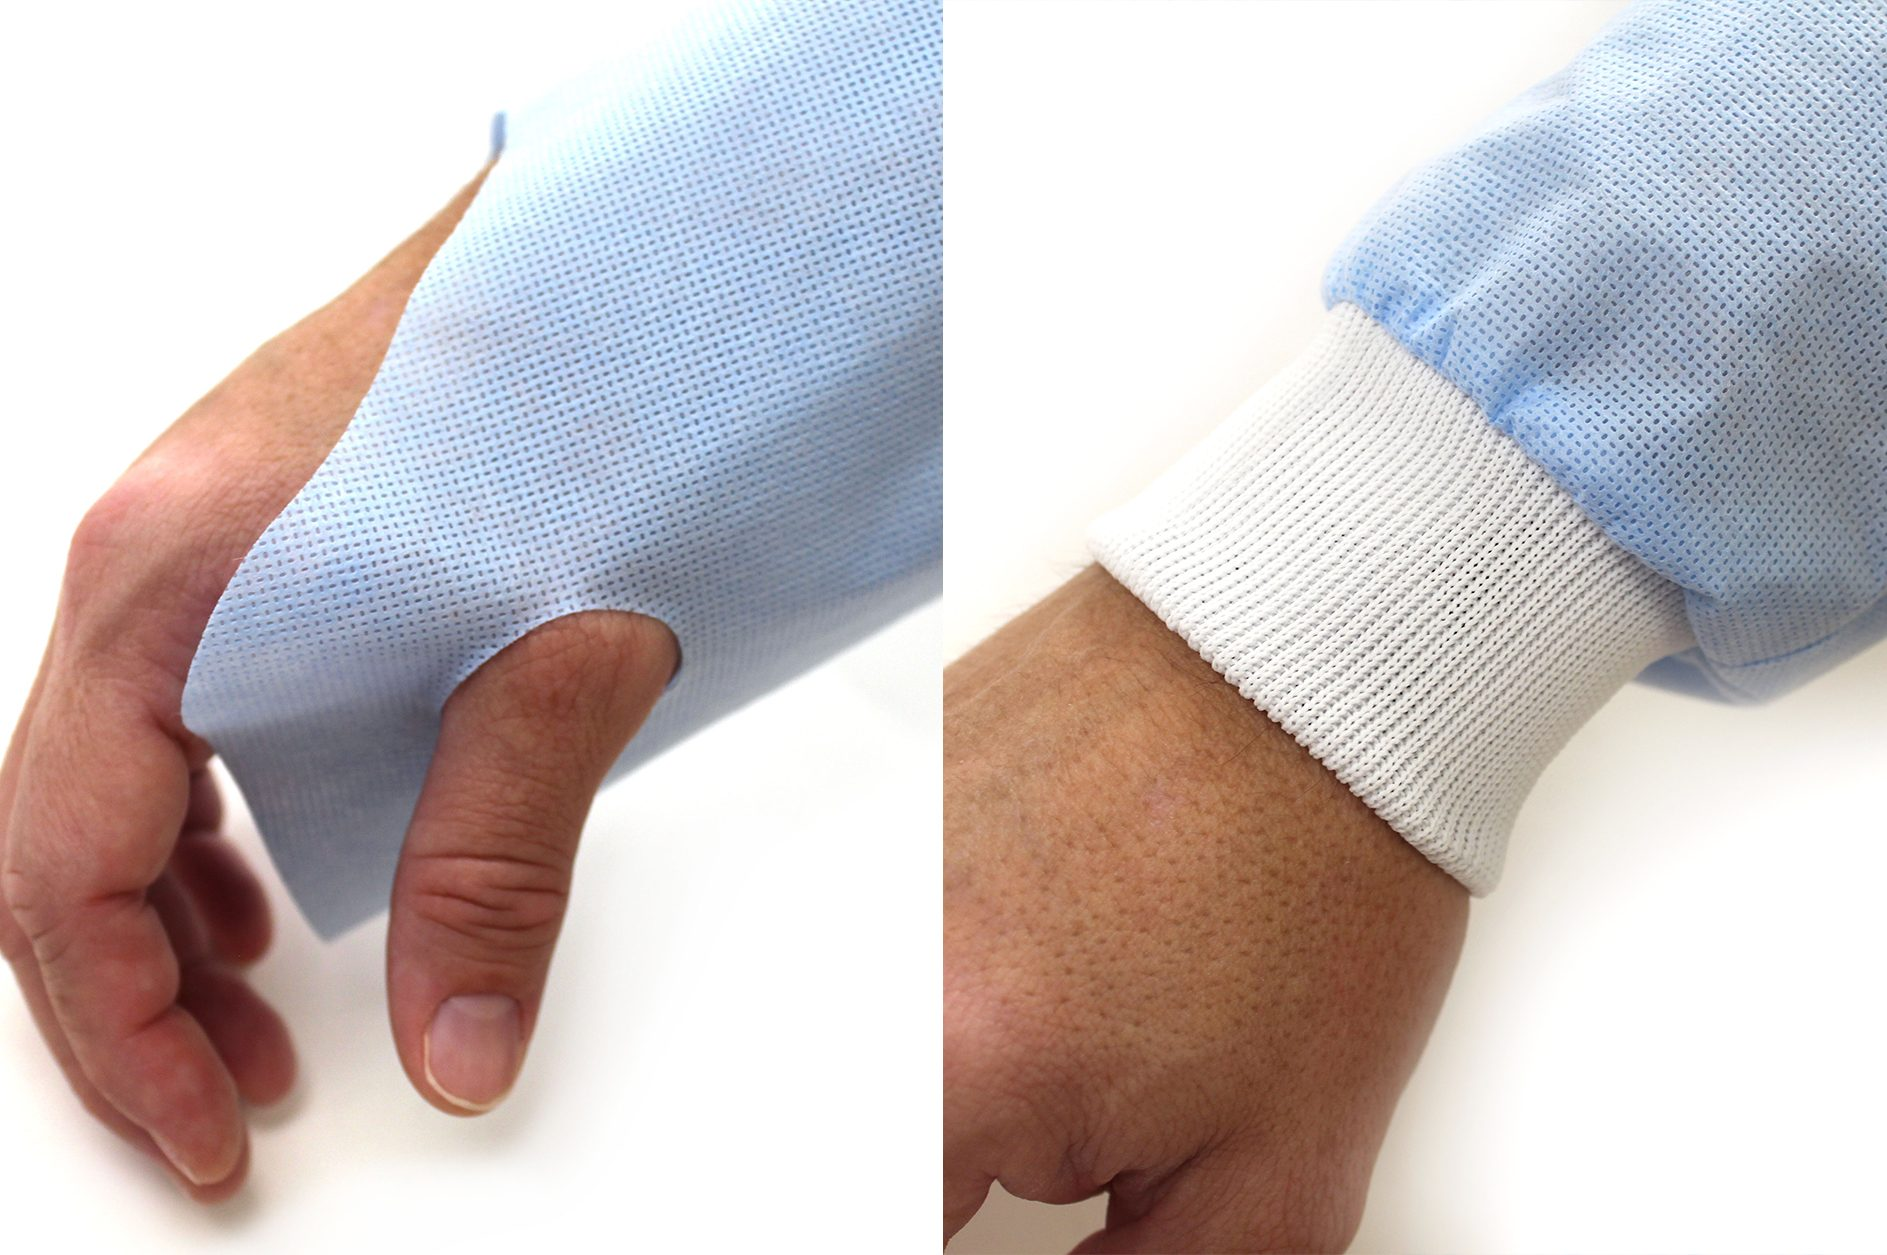 Medical Hand Loops or Cuffs